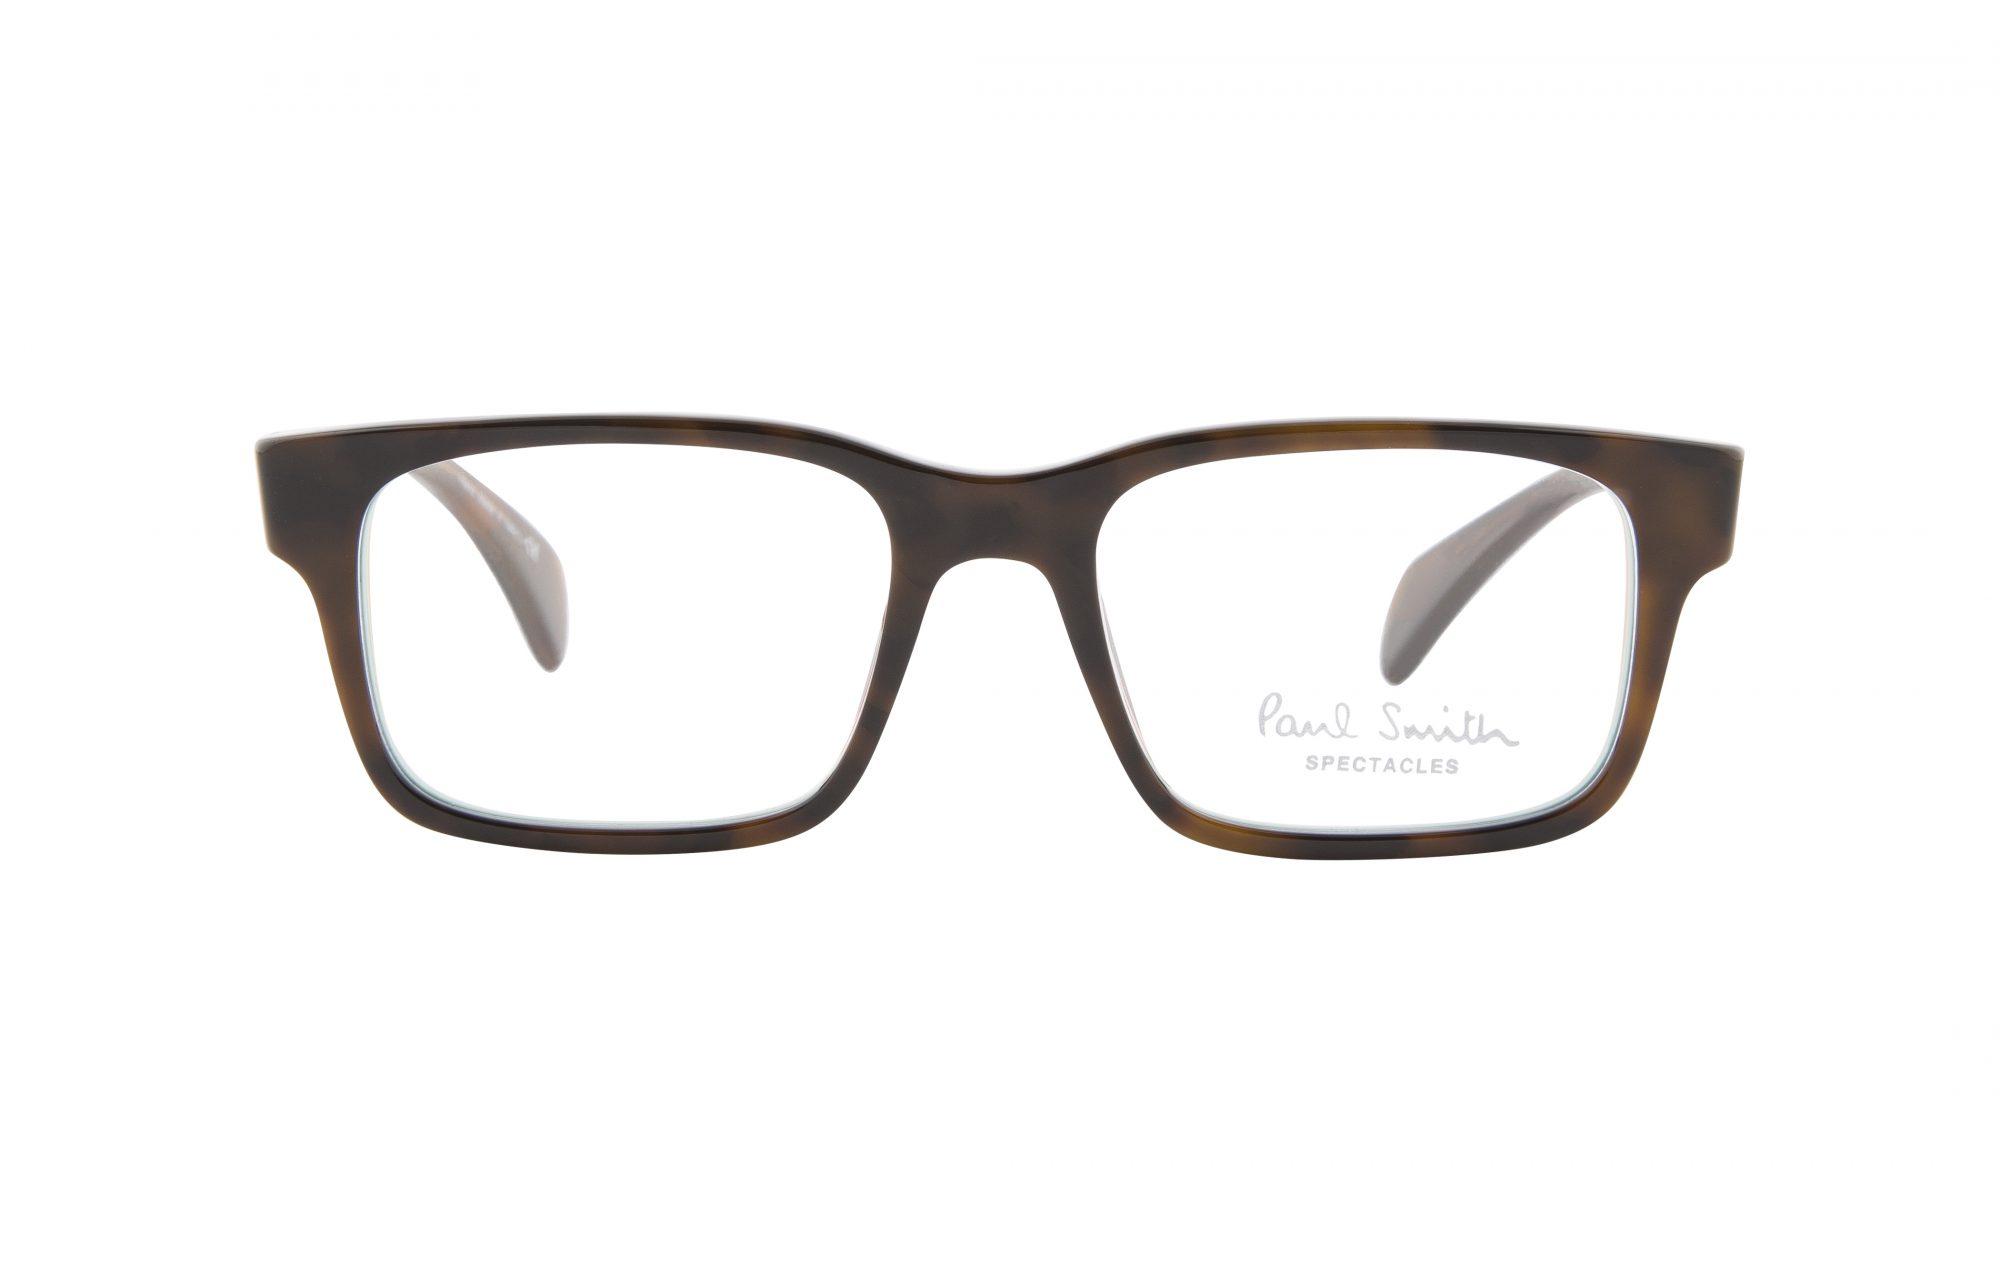 F:PHOTOMediaFactory ActionsRequests DropBox48154#CourtesyPaul Smith Tortoiseshell and 'Artist Stripe' 'Pirroni' Spectacles